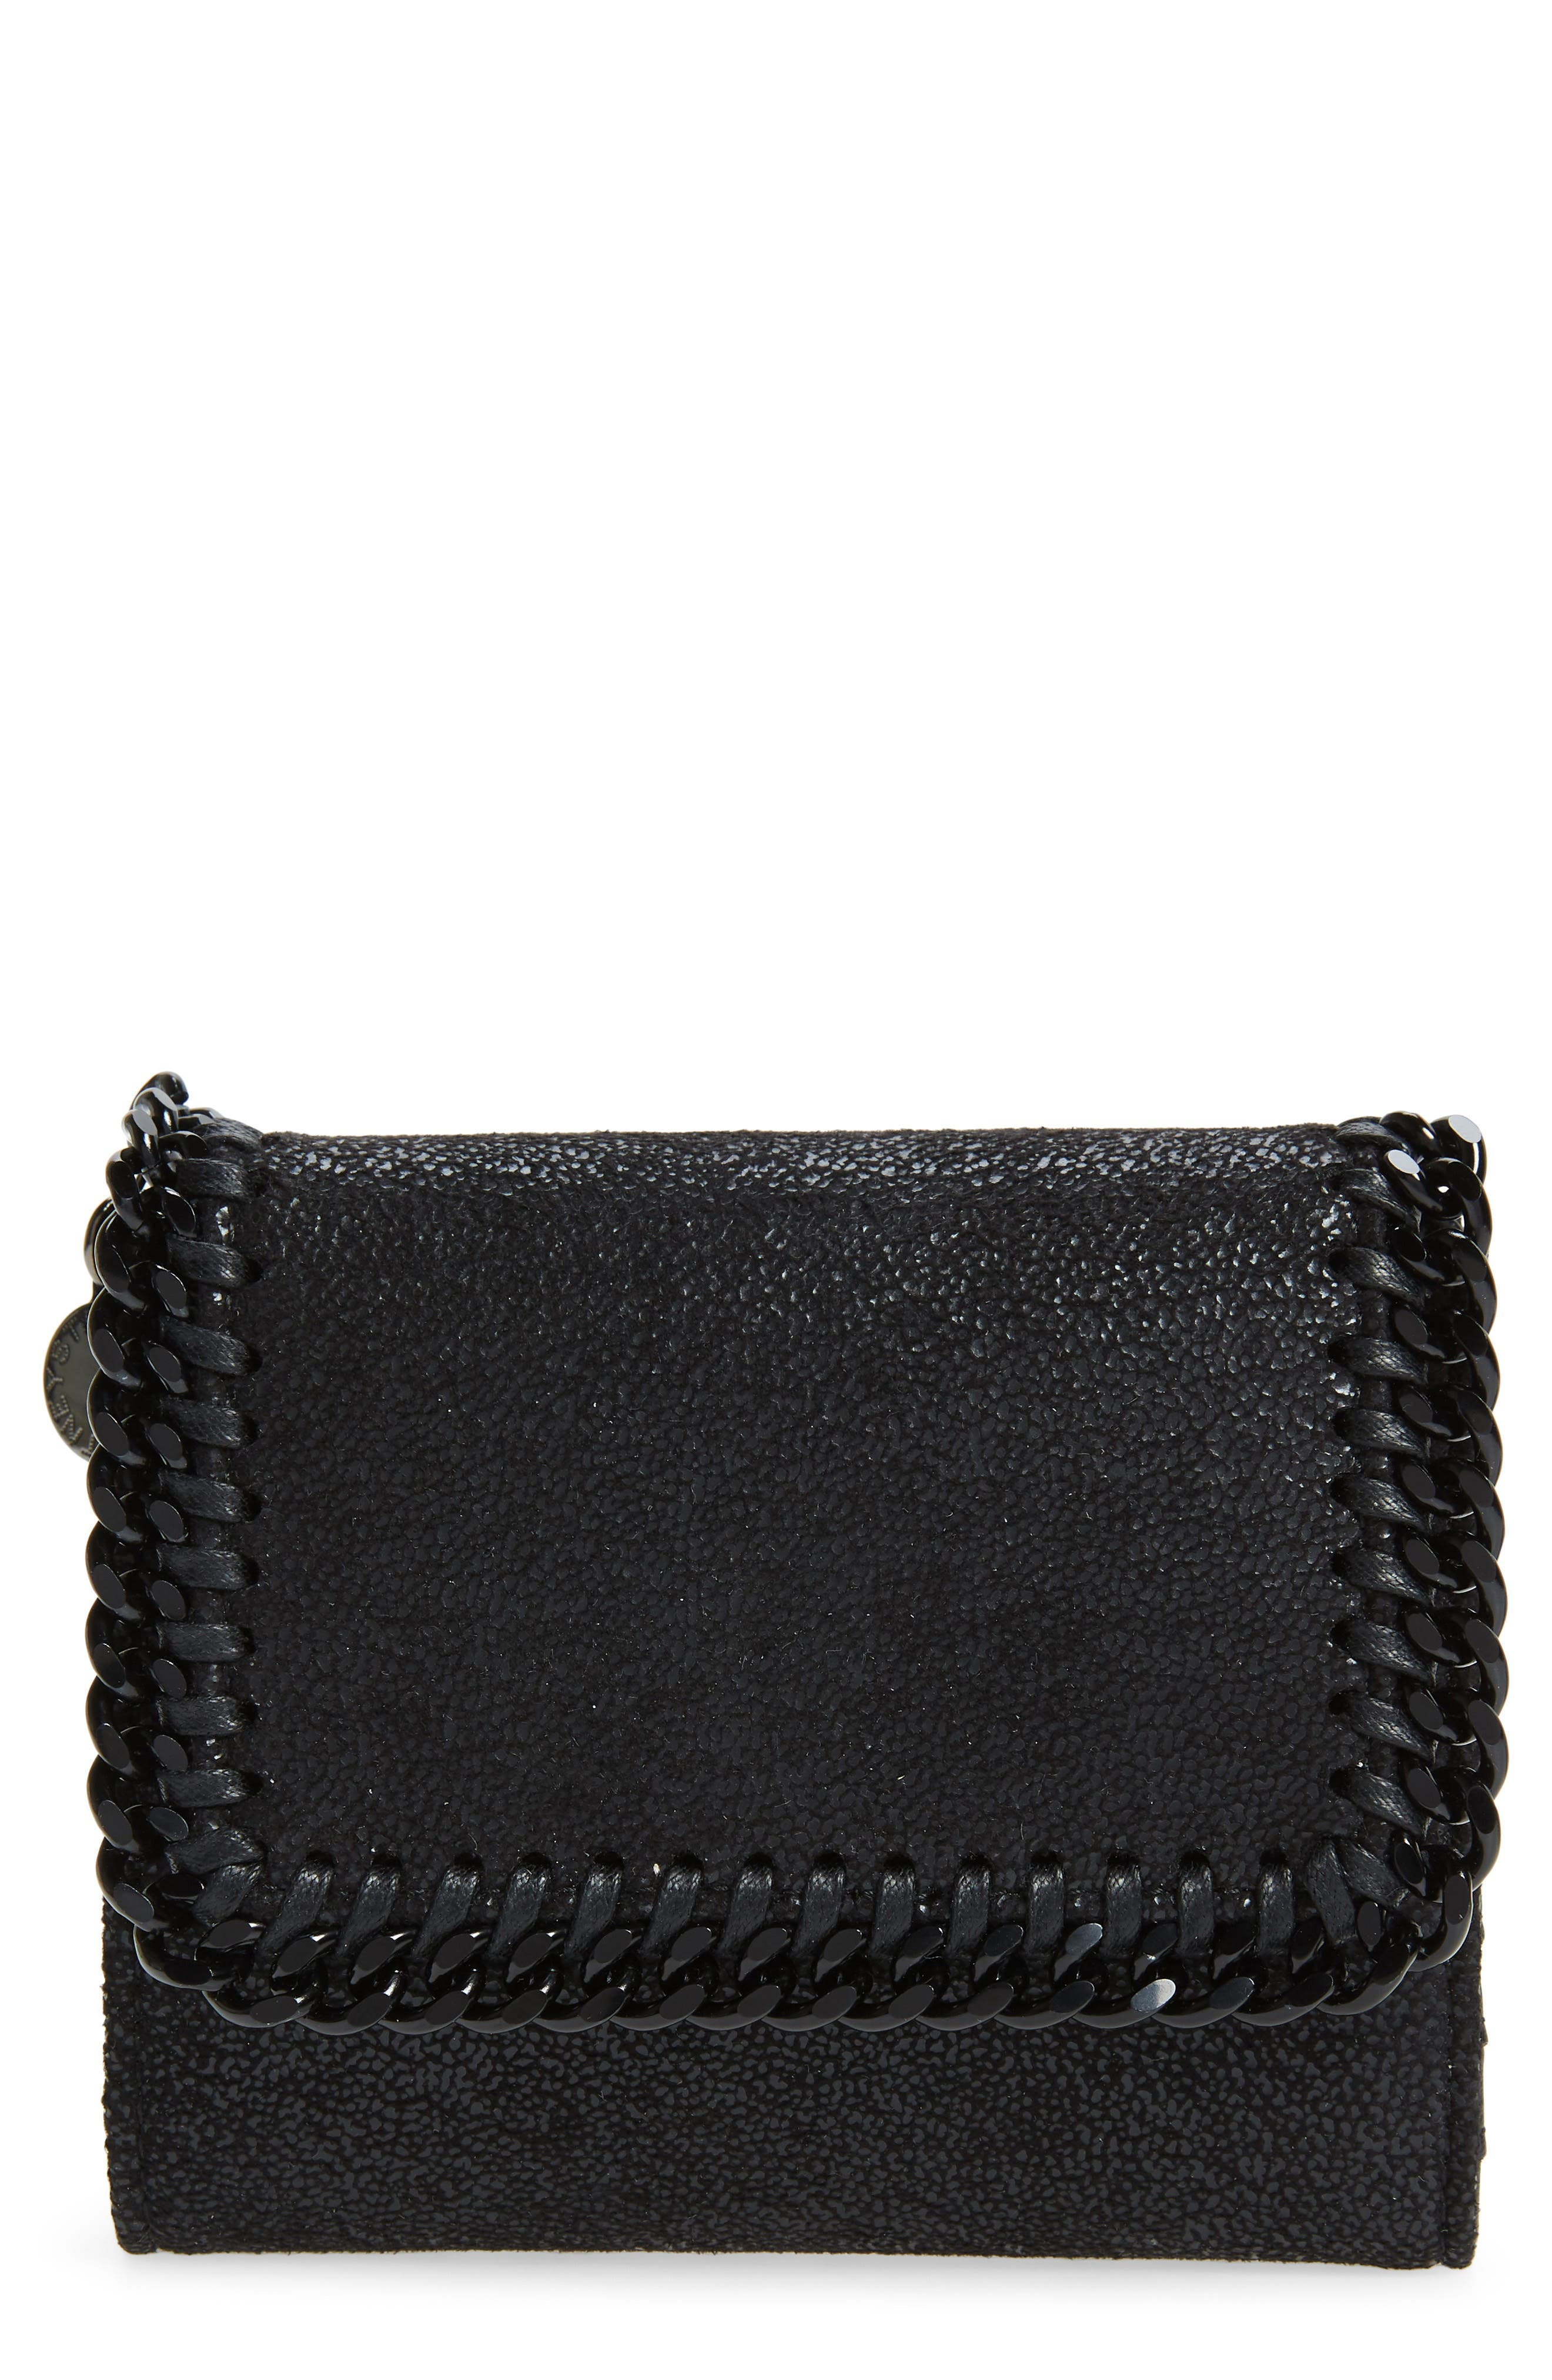 Stella McCartney Falabella Faux Leather Shaggy Deer Wallet